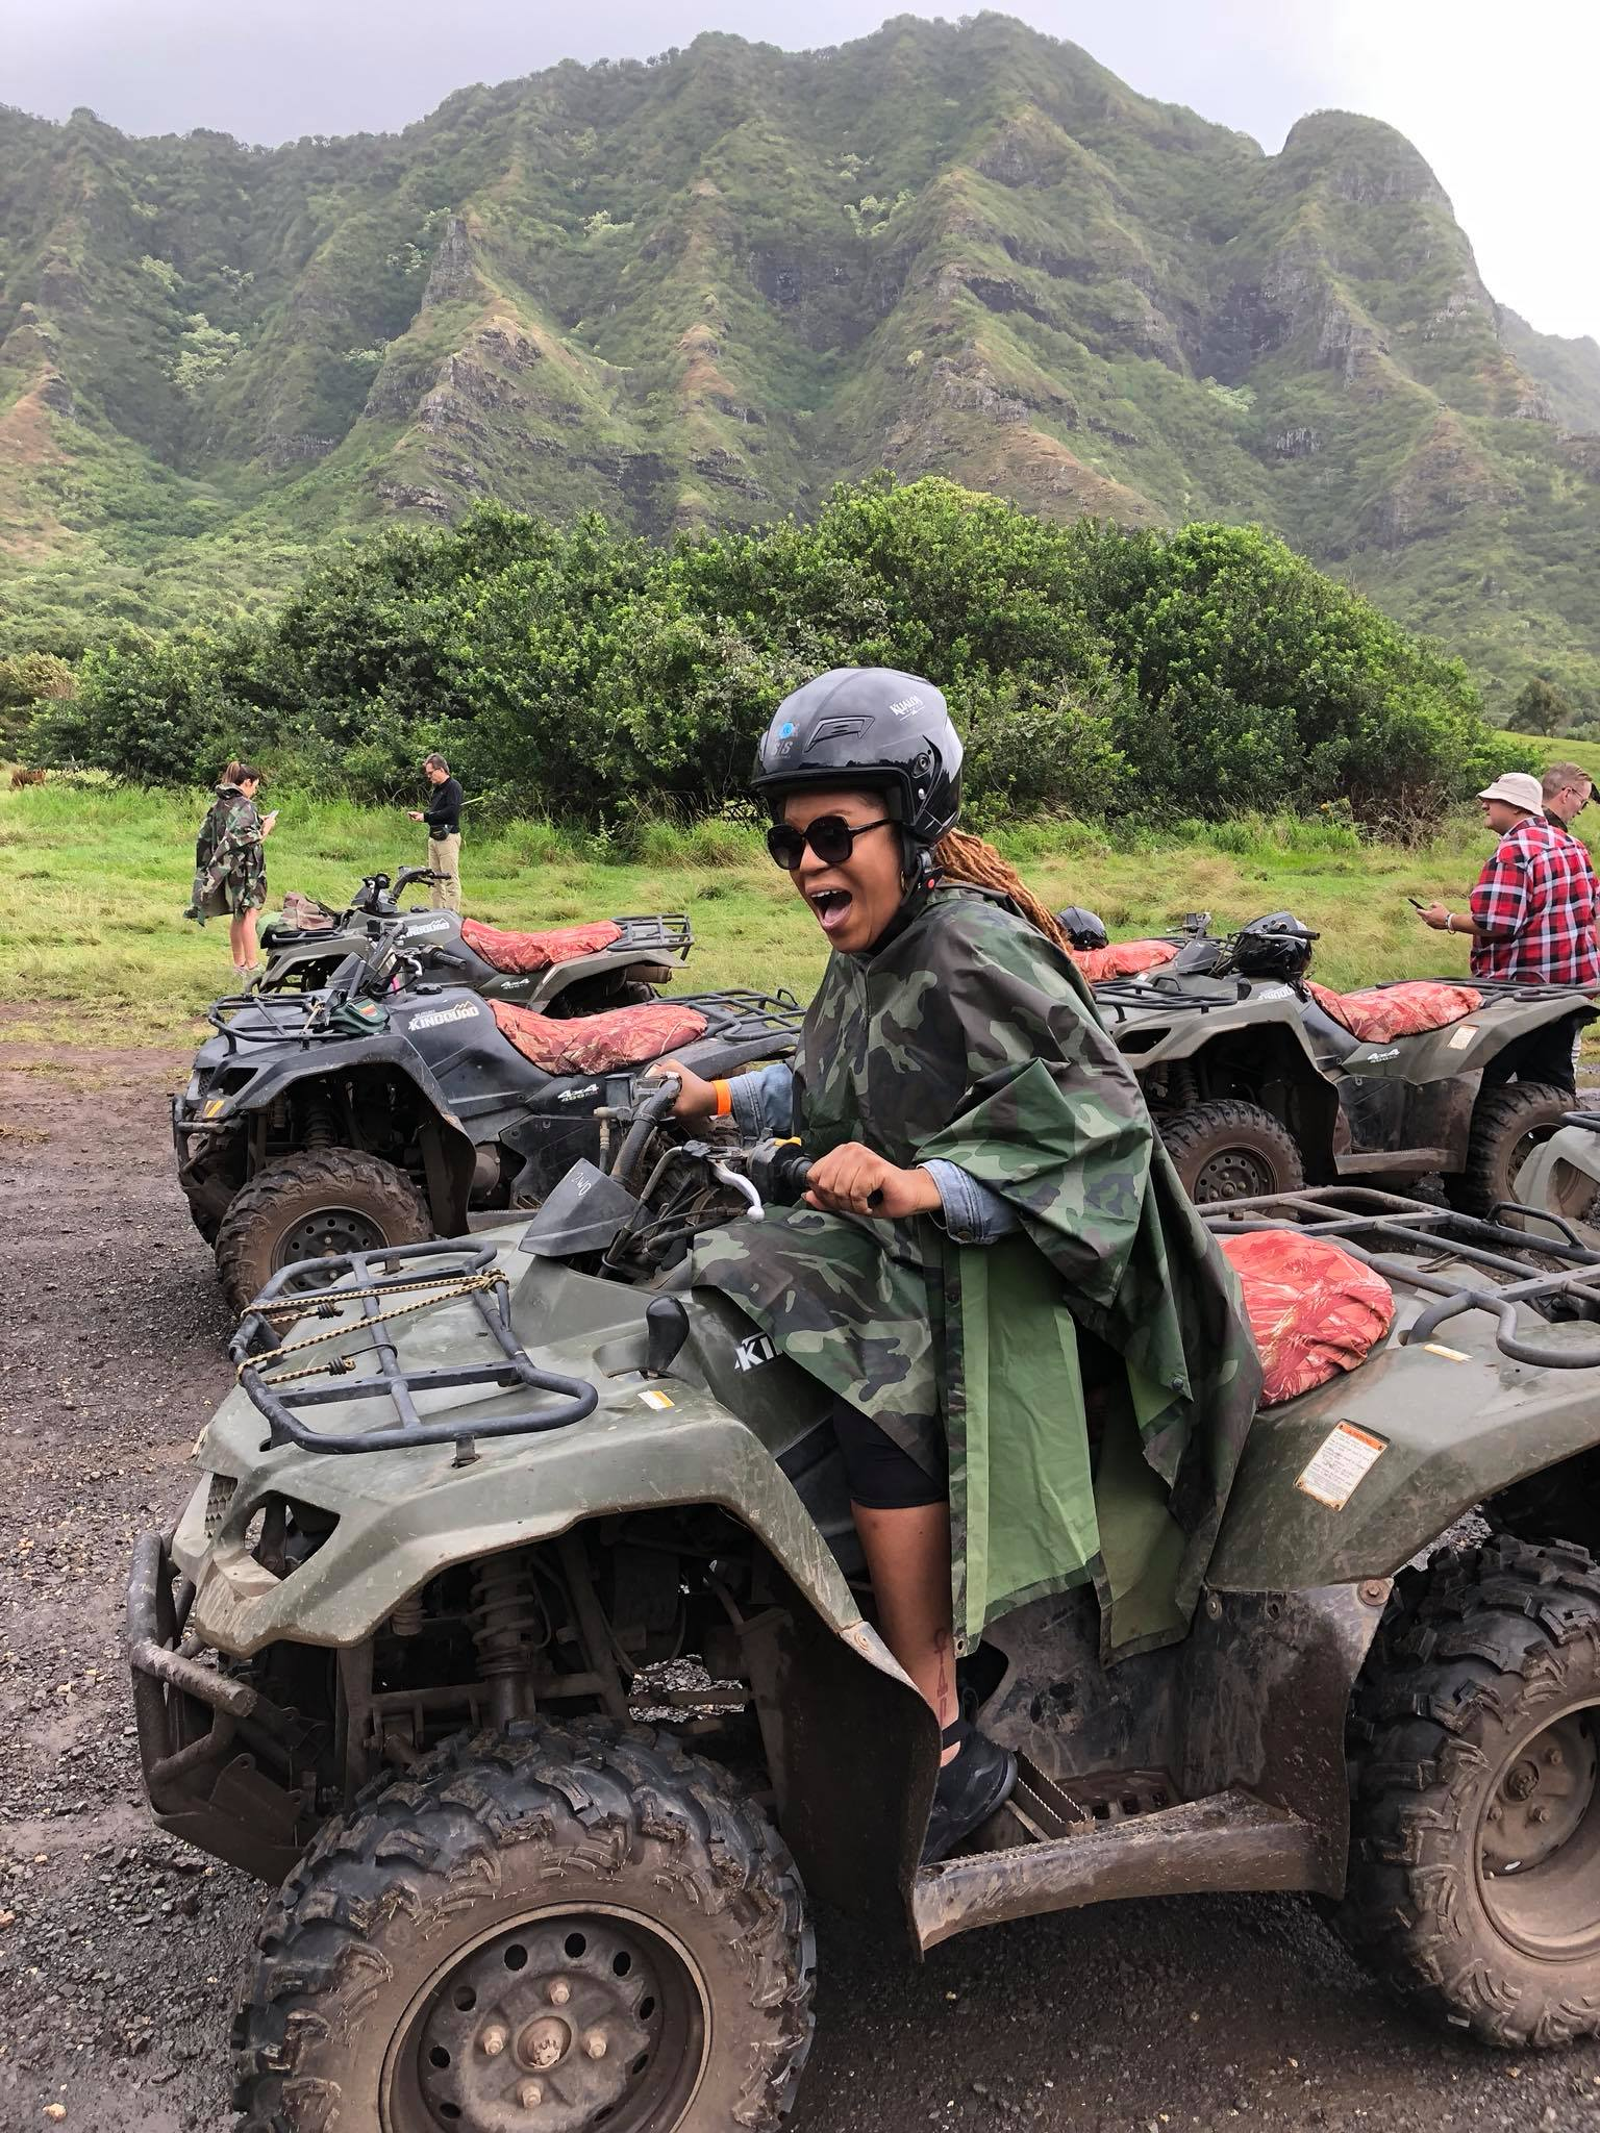 Me doing my best impression of a Tyrannosaurus, since we were riding through the area where Jurassic Park was shot (Yesha Callahan/The Root)